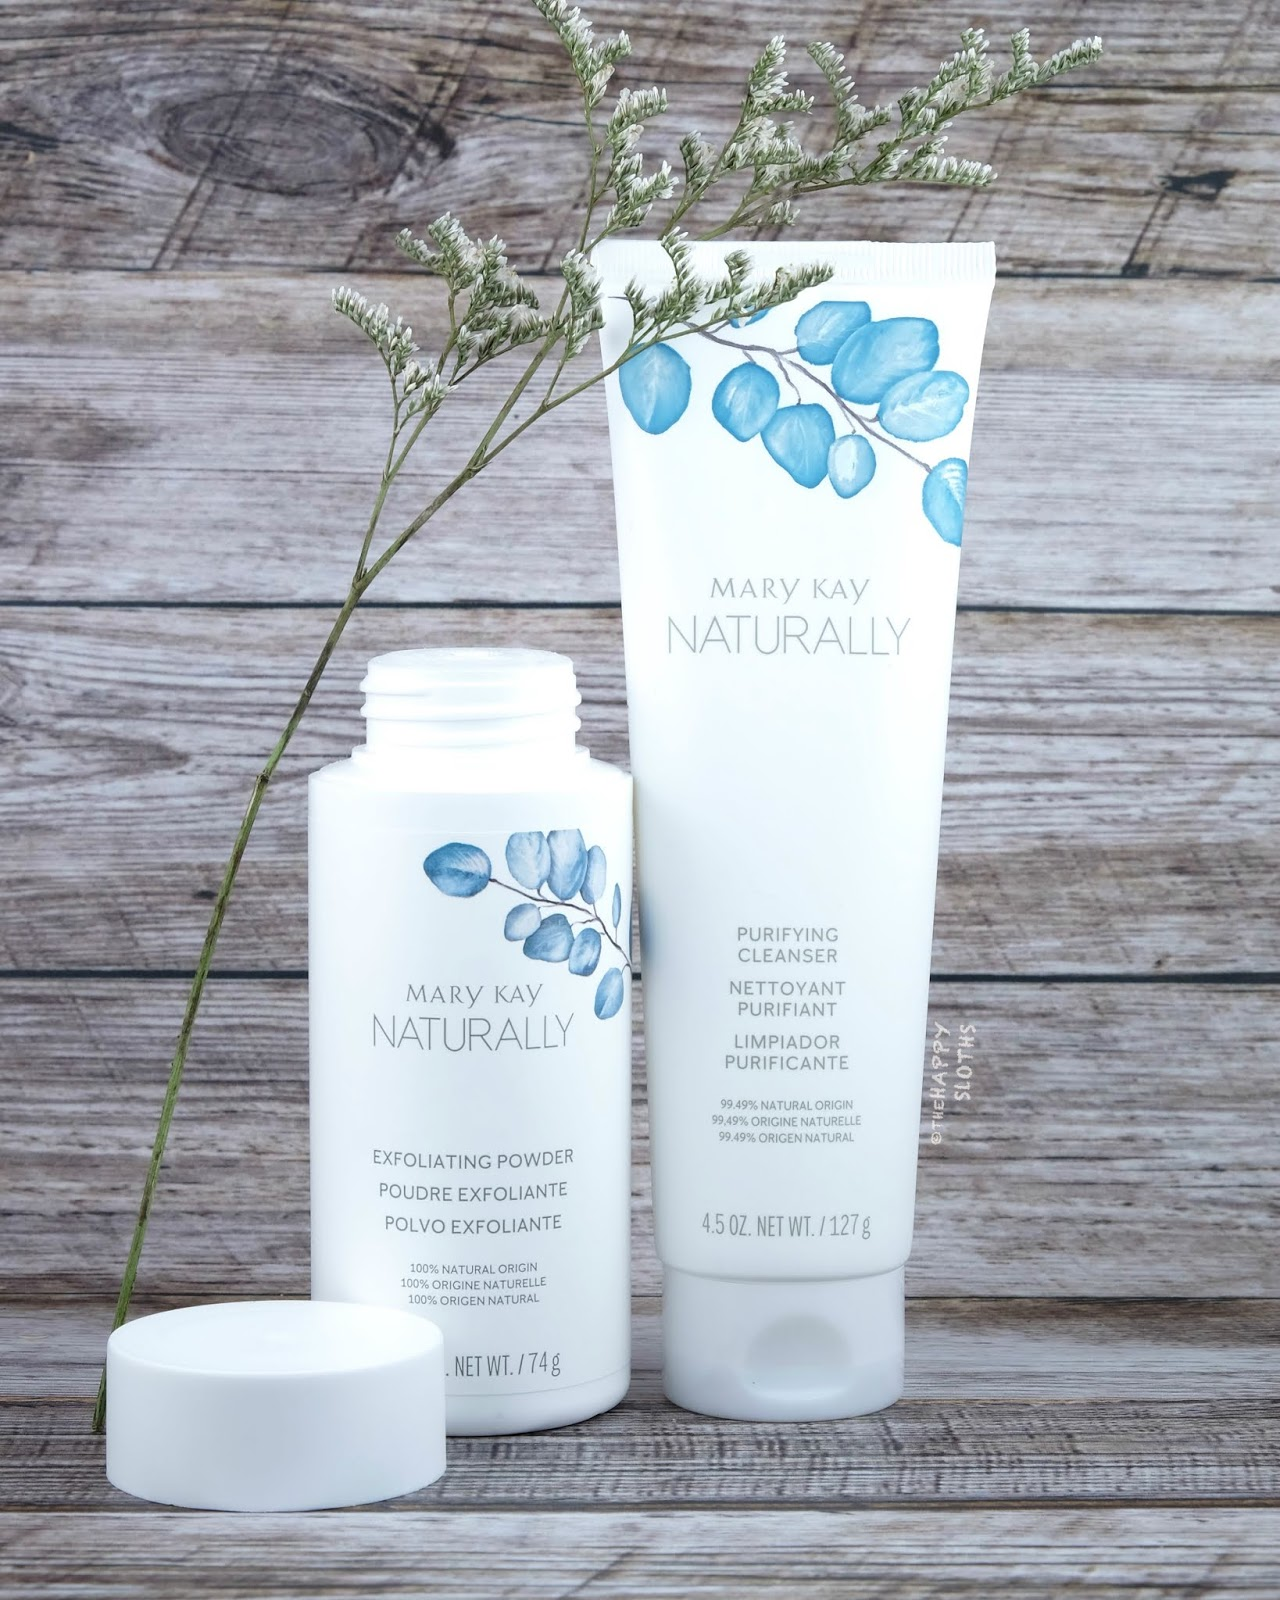 Mary Kay | Naturally Purifying Cleanser & Naturally Exfoliating Powder: Review